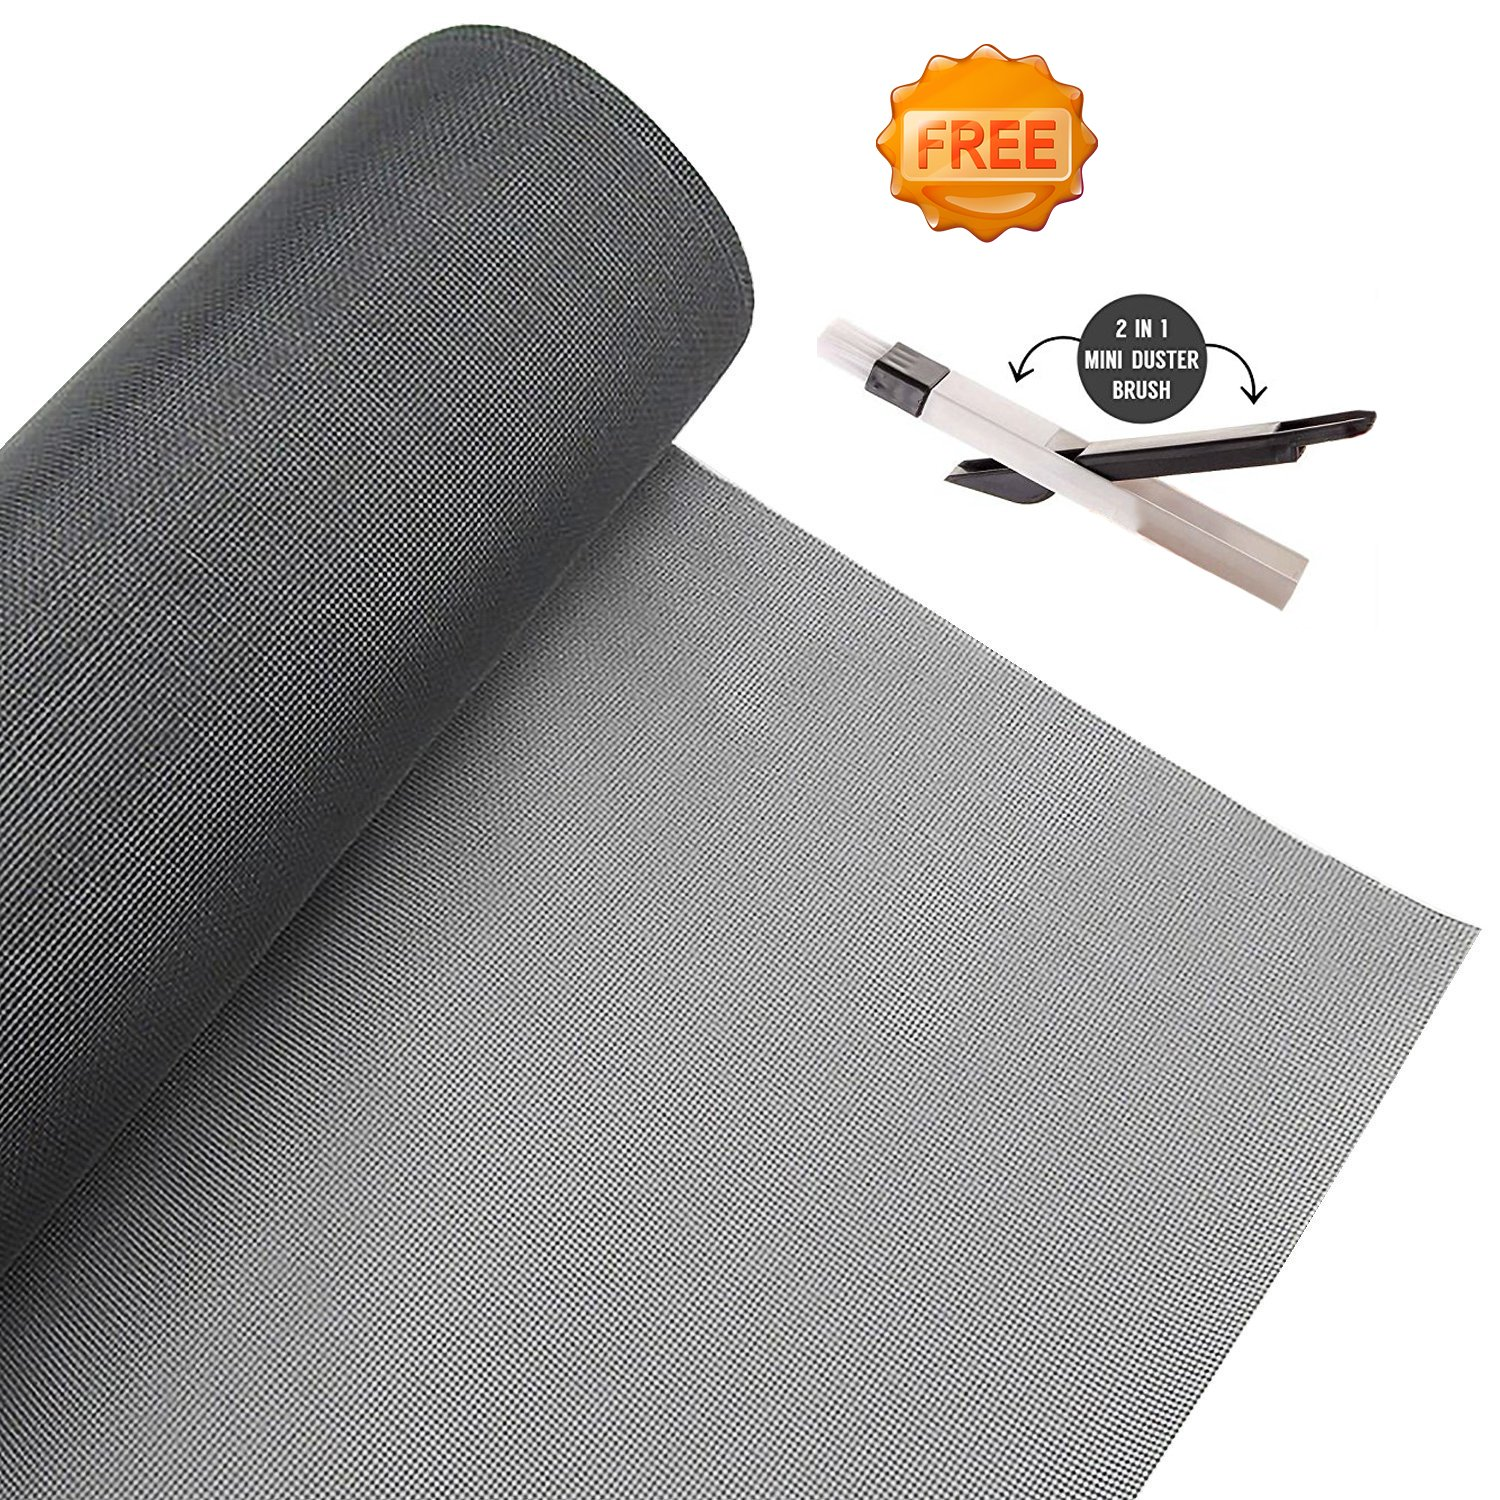 Window Screen Roll Adjustable Protector Screen Mesh Replacement Inflaming Fiberglass Summer Blocking Mosquito Insect Bug Fly for Window and Door with Cleaning Brush (Gray 48 x 99 inch)